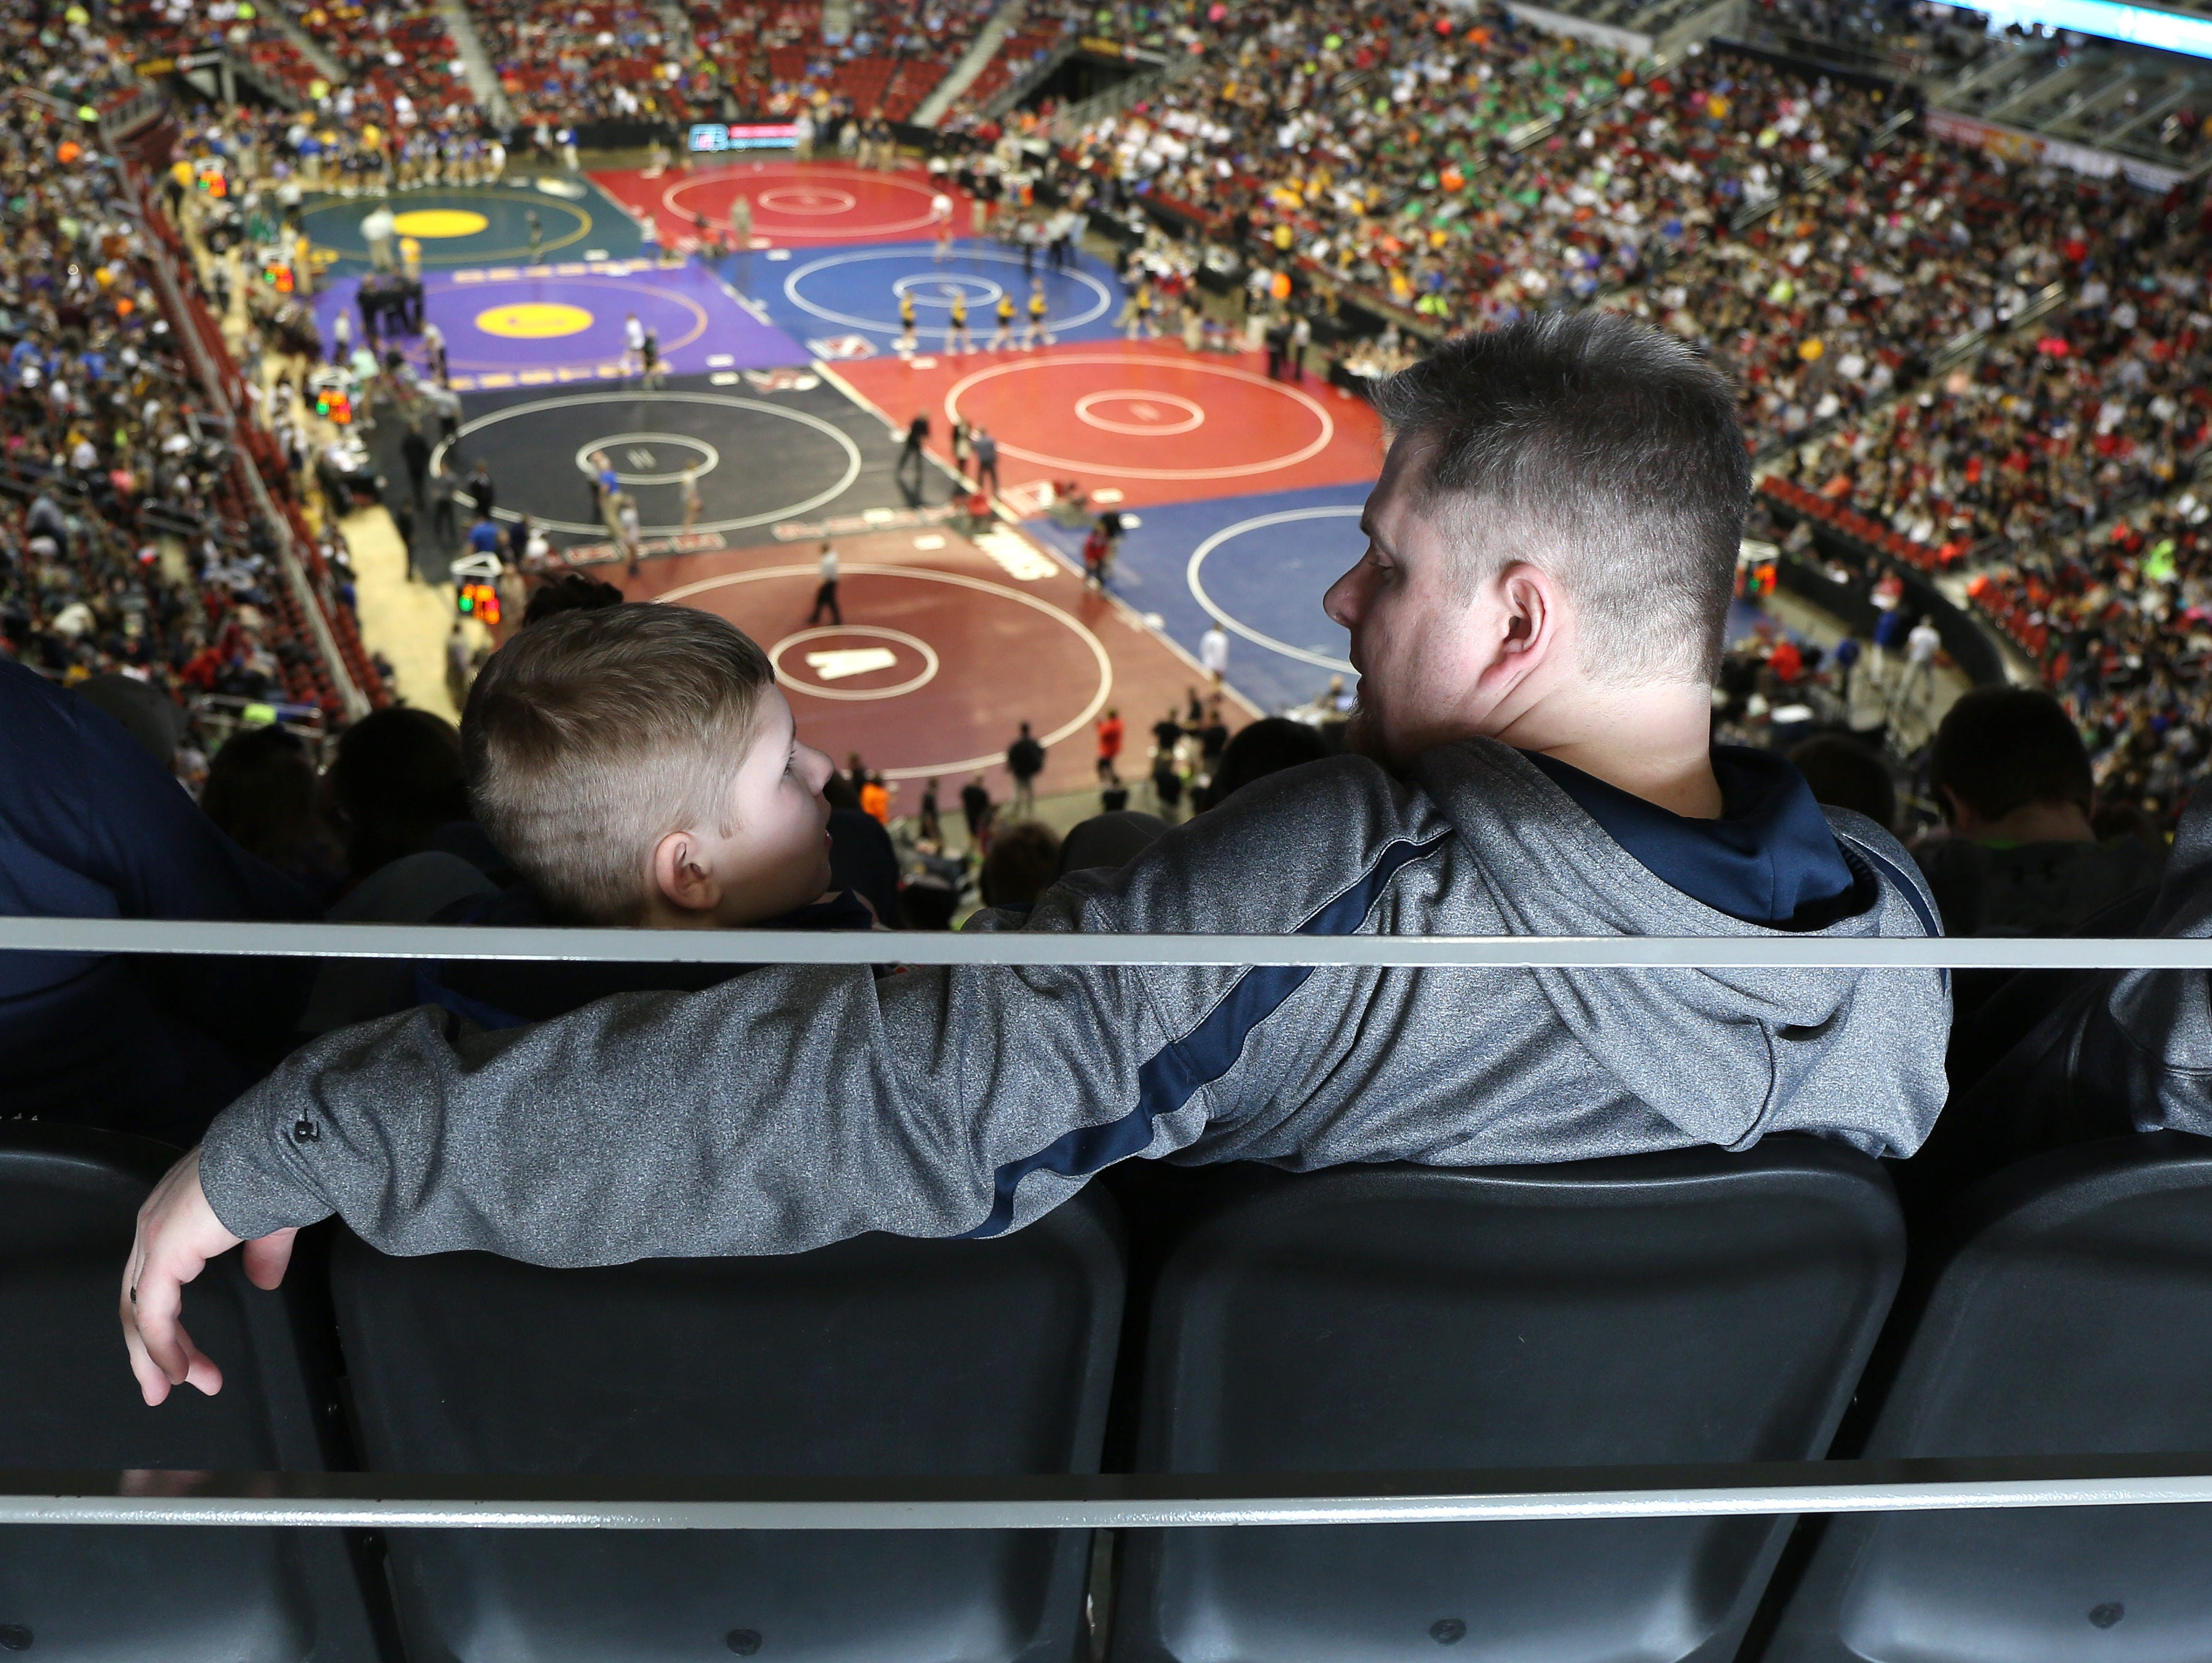 Wrestling fans take in the action from the afternoon session in Class 1A and 3A on Friday, Feb. 20, 2015, during the 2015 Iowa state wrestling meet at Wells Fargo Arena in Des Moines, Iowa.